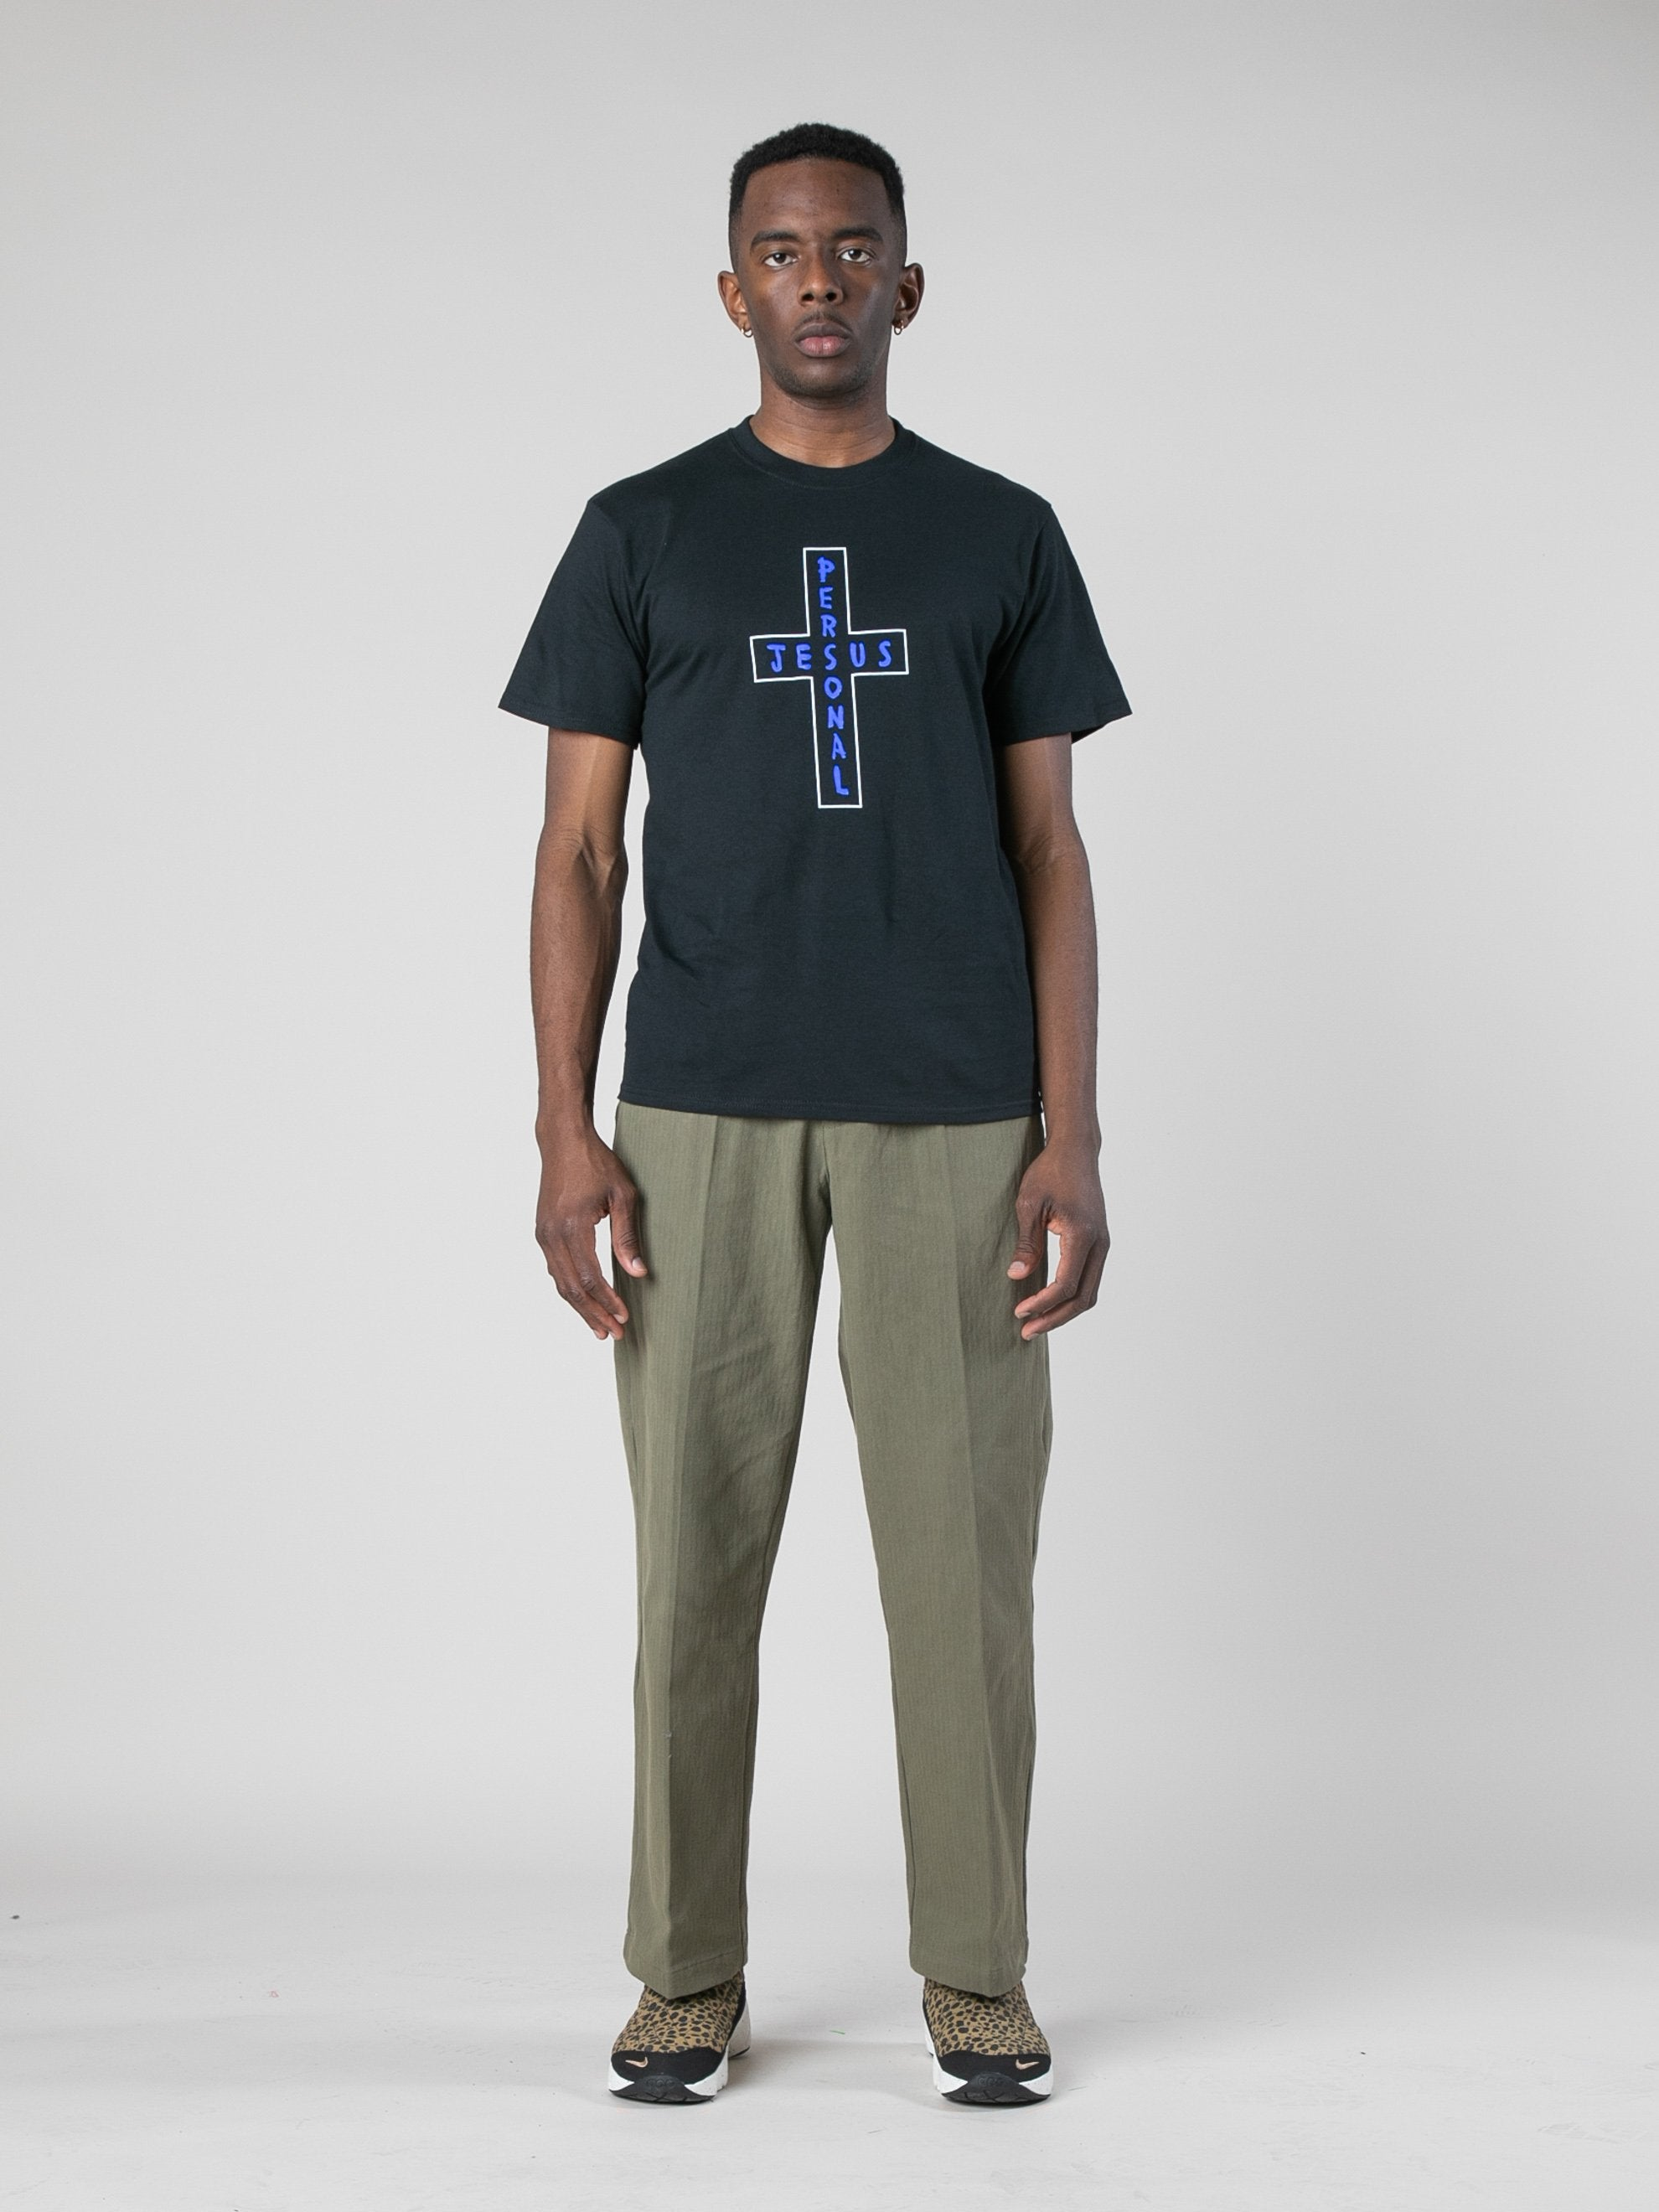 Personal Jesus T-Shirt